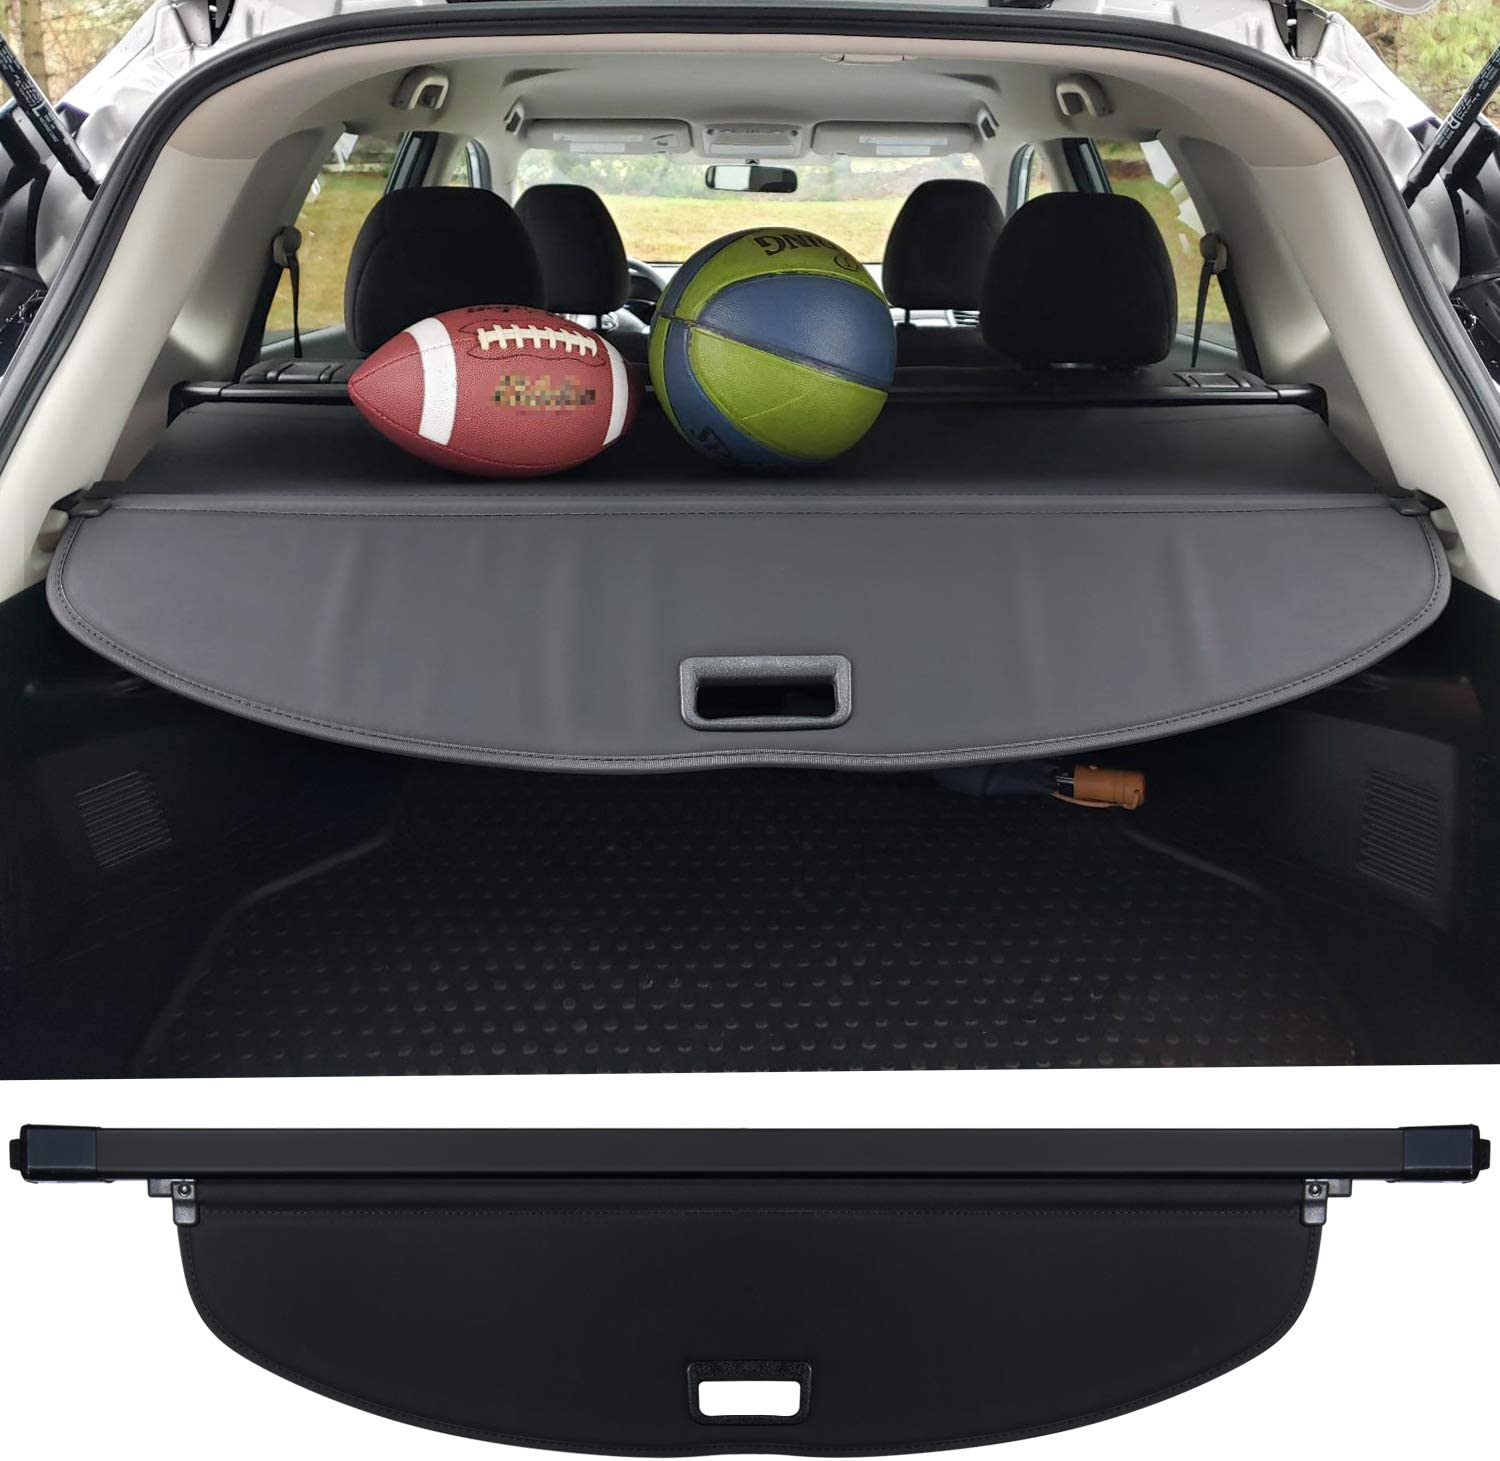 Trunk Cargo Cover For Oklahoma City Mall Nissan X-trail NEW Ret SL S SV Rogue 2014-2020